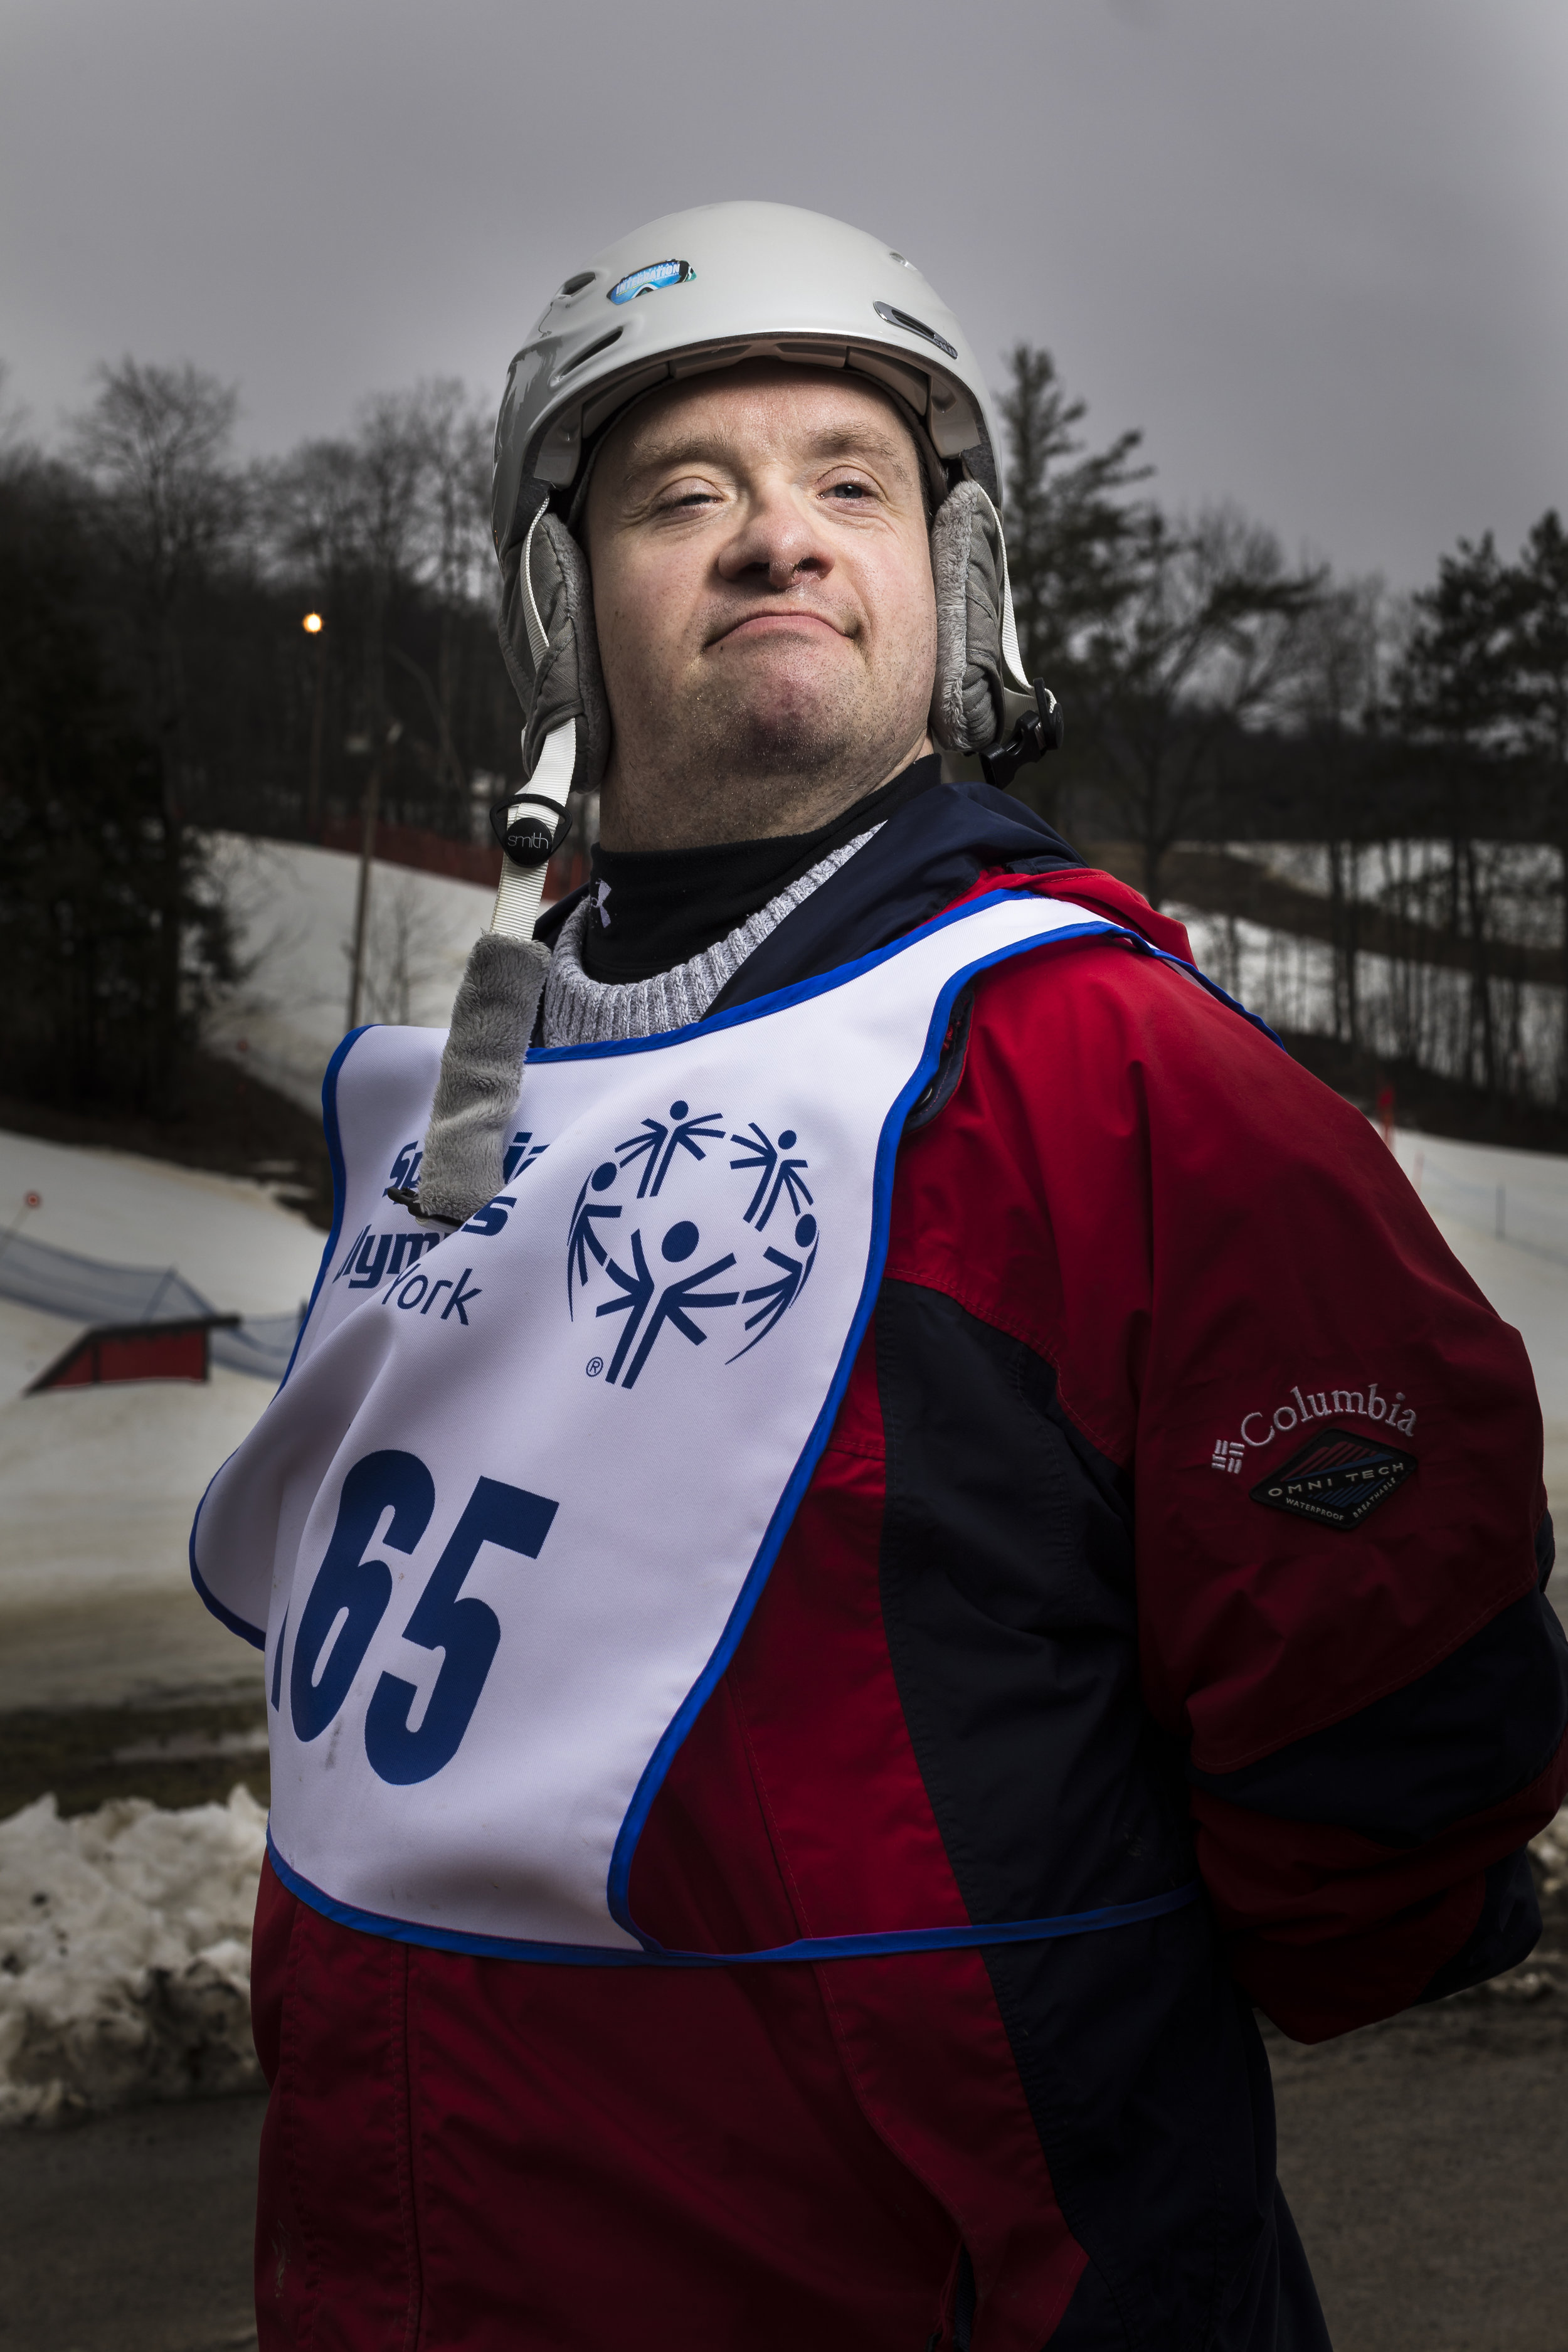 Alpine skier Daniel Volxen, from Onondaga Central Region, at the 2018 Special Olympics New York State Winter Games at Swain Resort in Swain, N.Y. Feb. 24, 2018.  L. McCullough